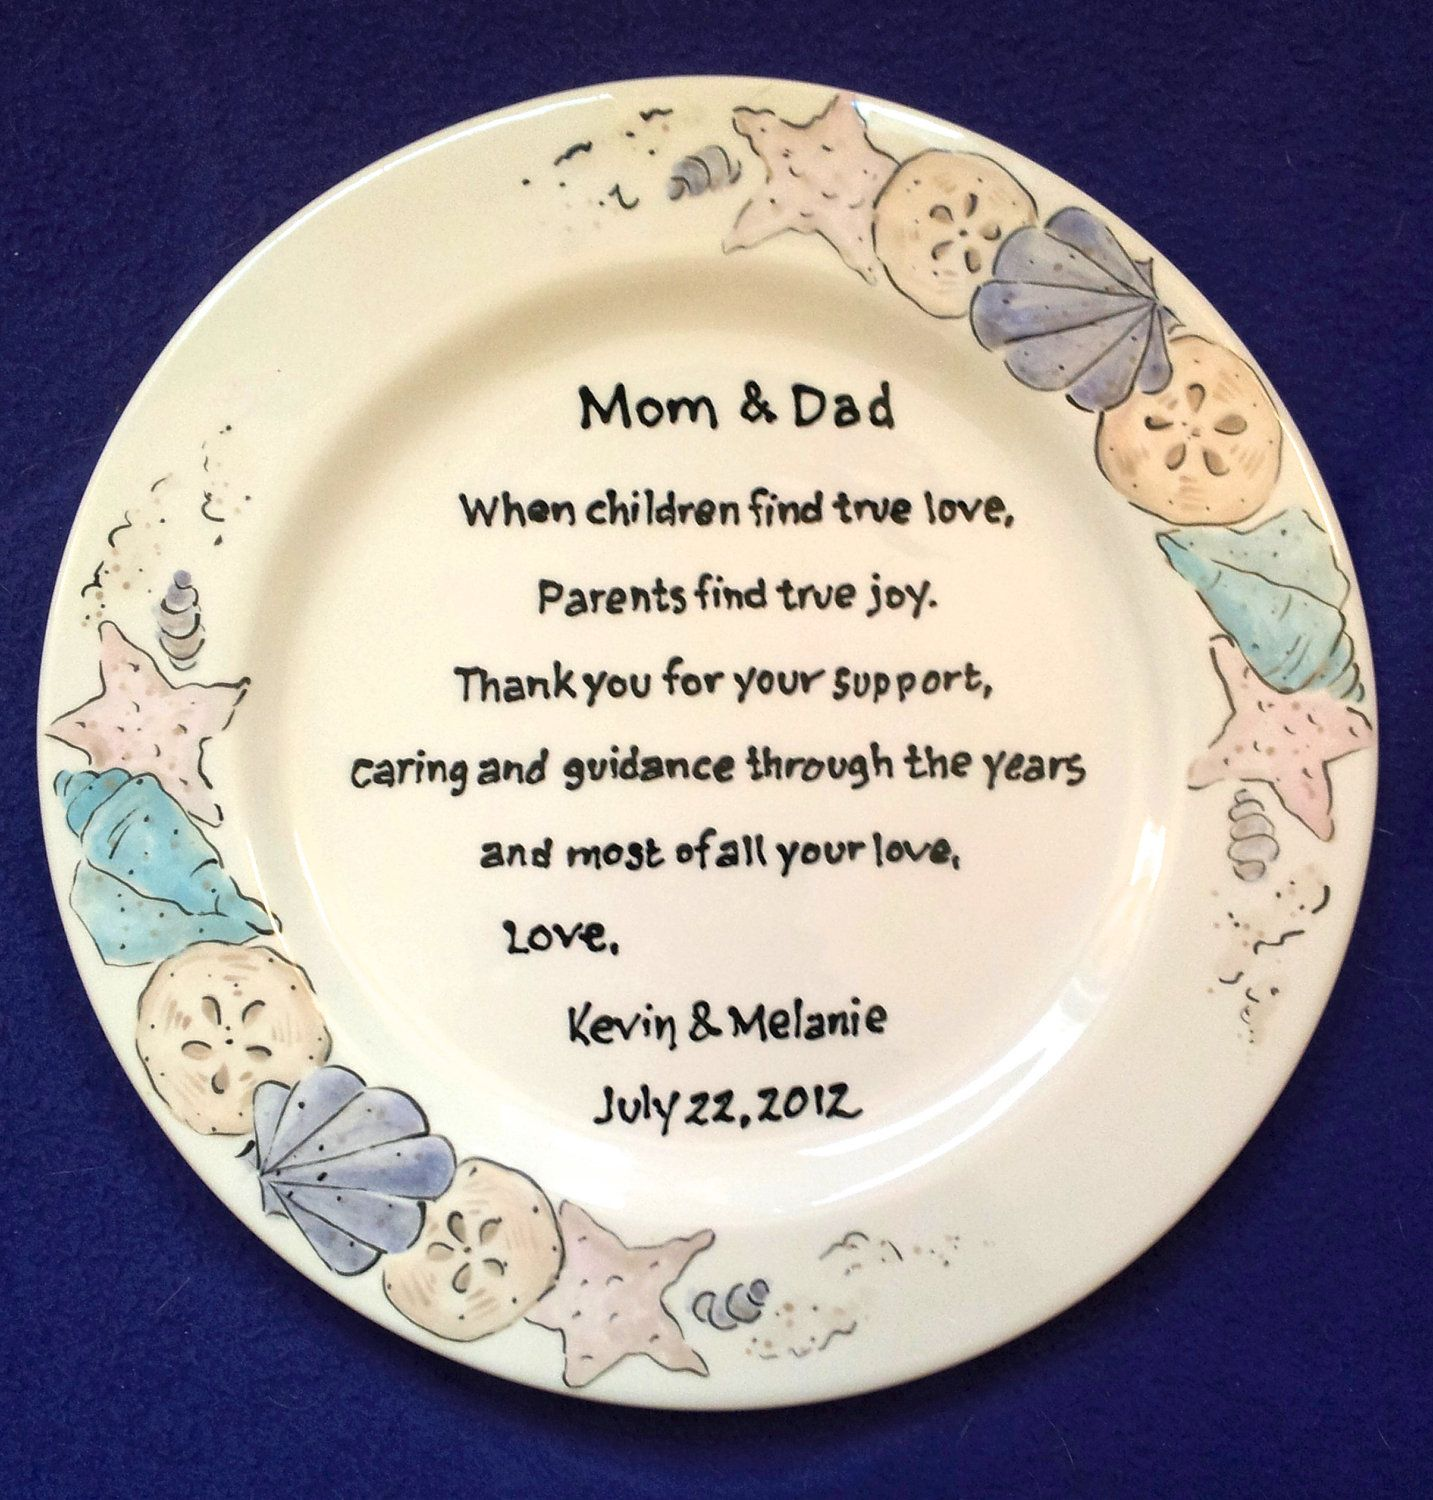 Mother of the bride giftpersonalized giftmom and dadwedding gift